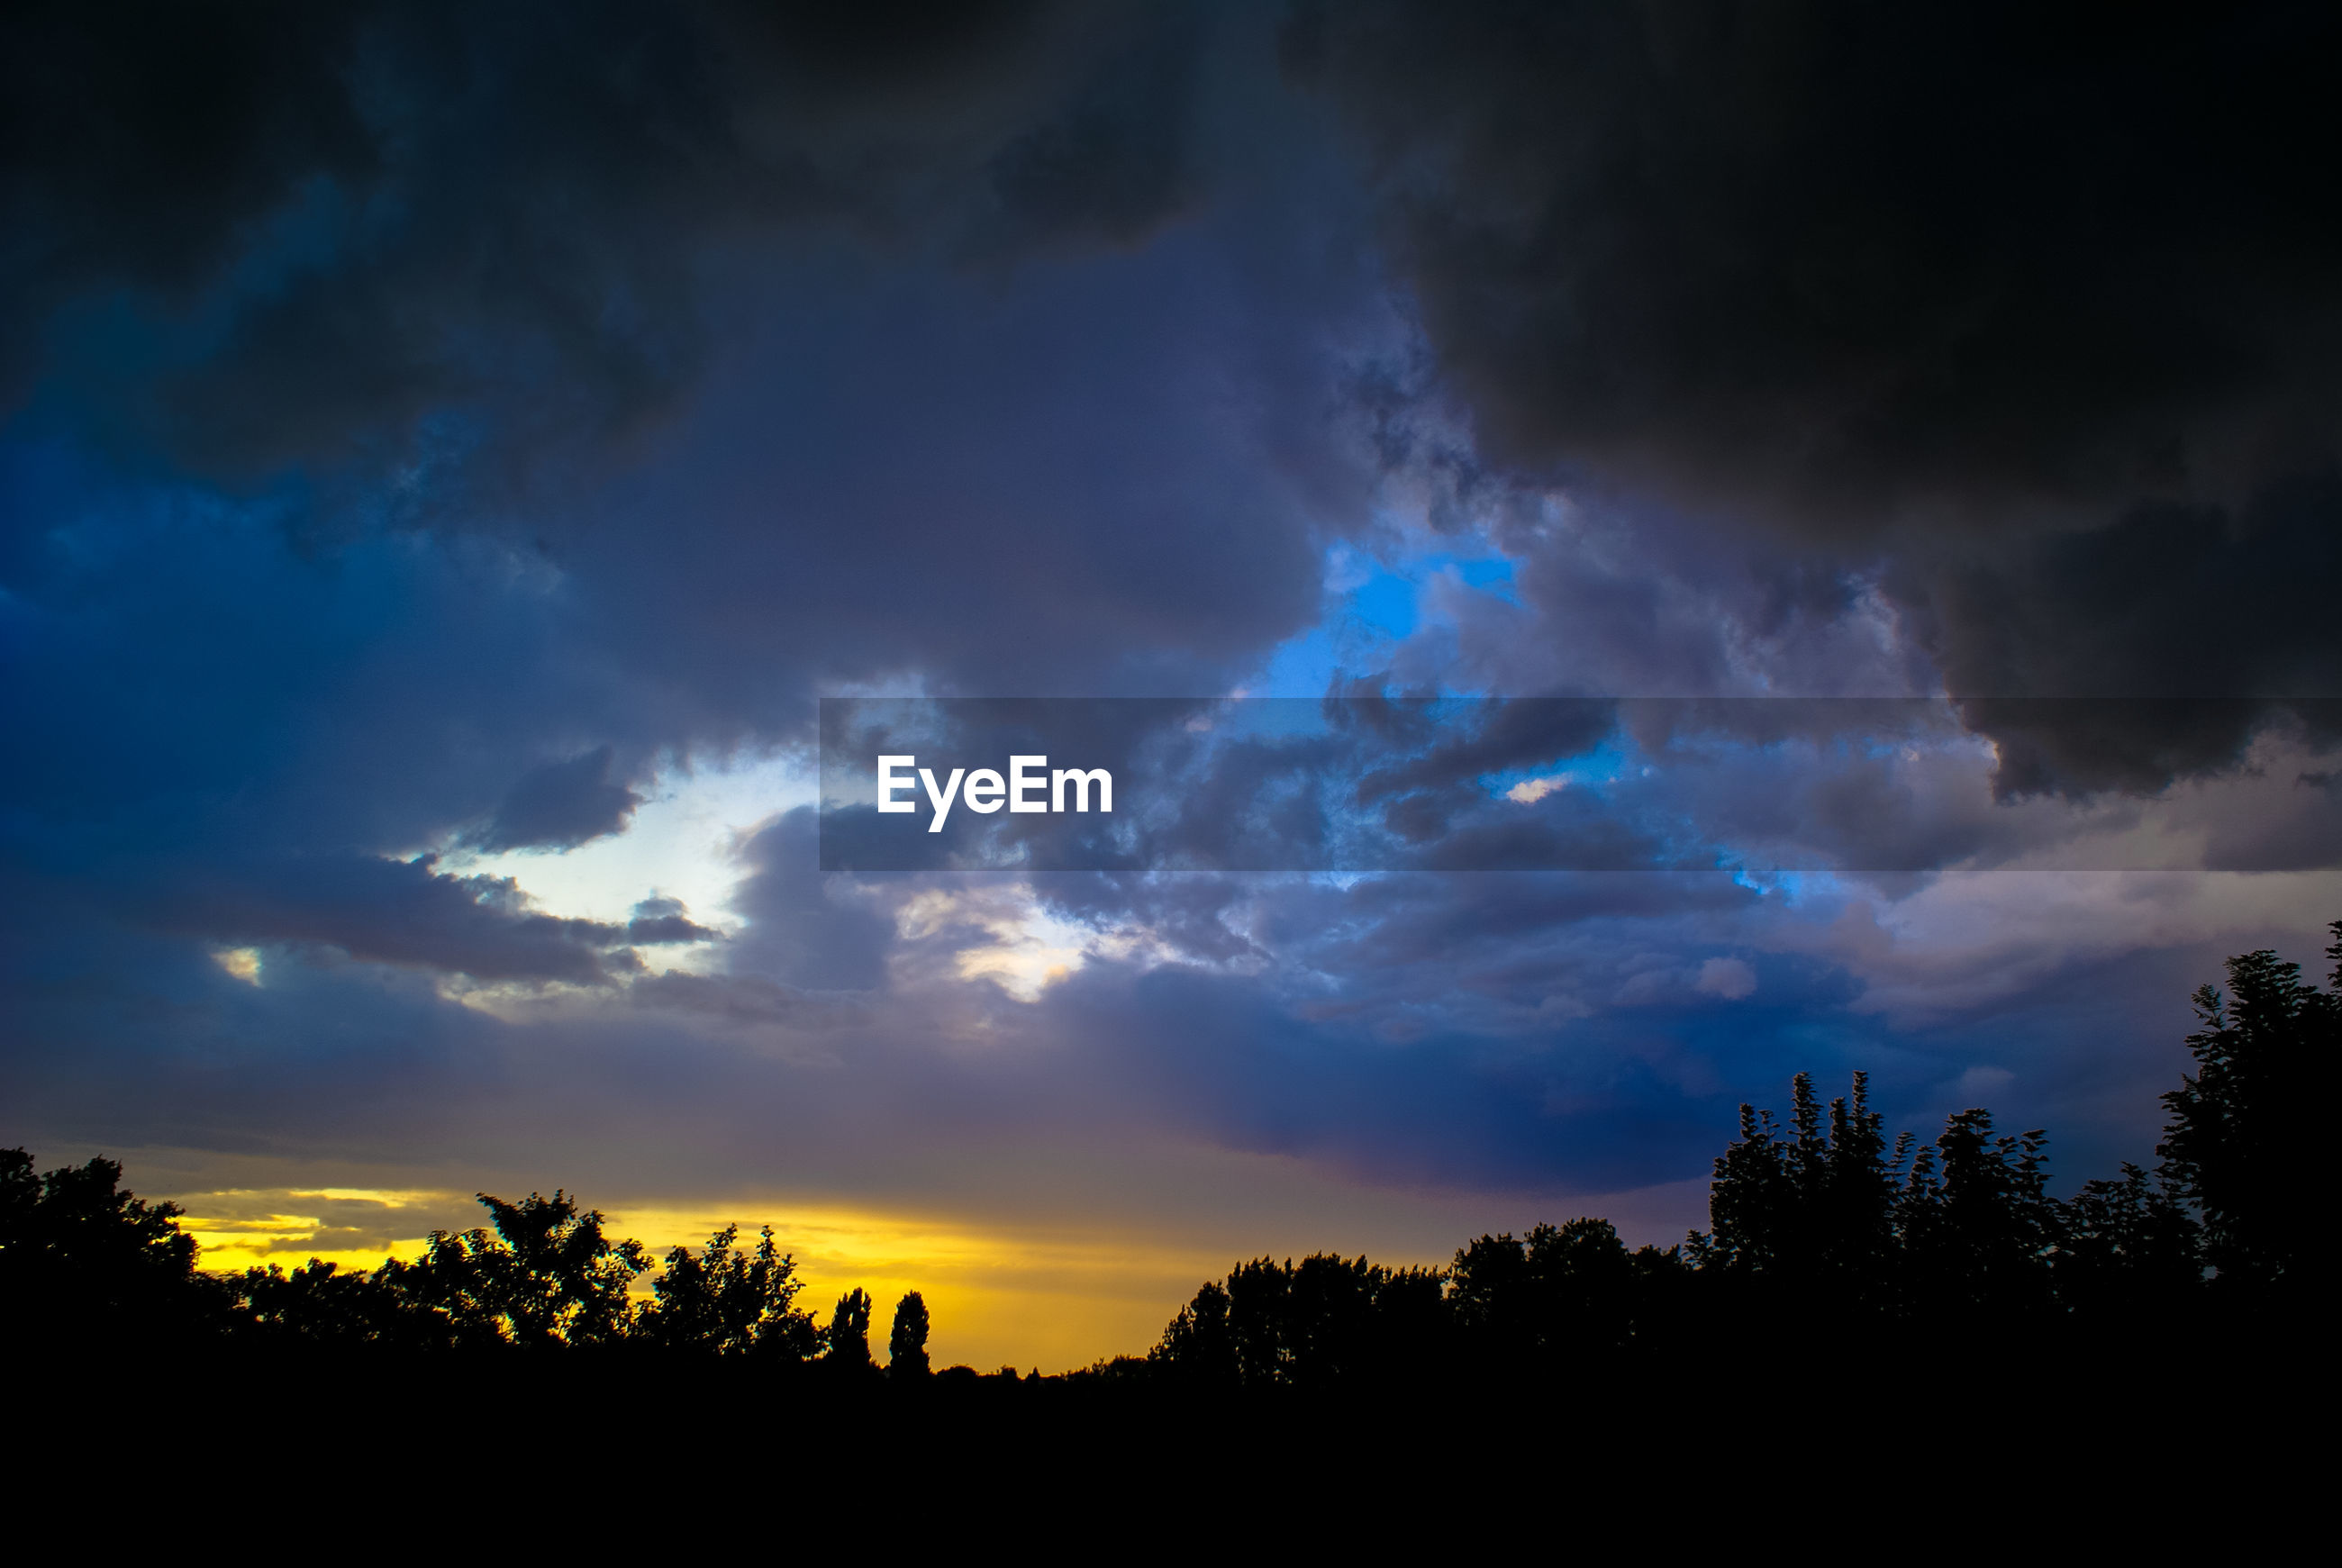 SILHOUETTE OF TREES AGAINST CLOUDY SKY AT SUNSET